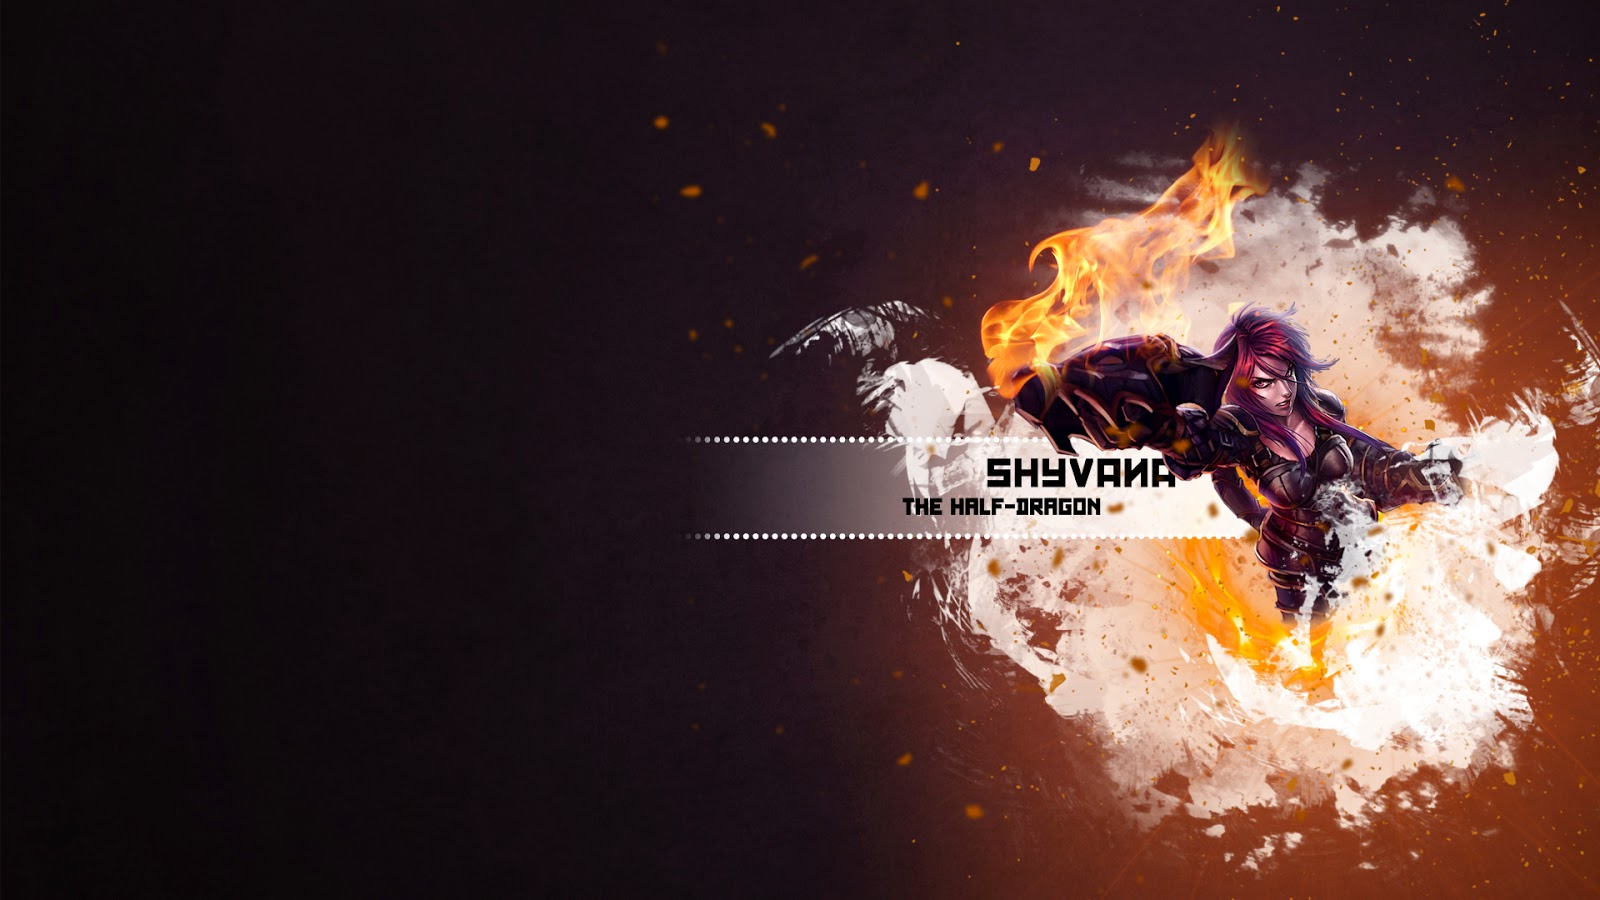 Shyvana League of Legends Wallpaper